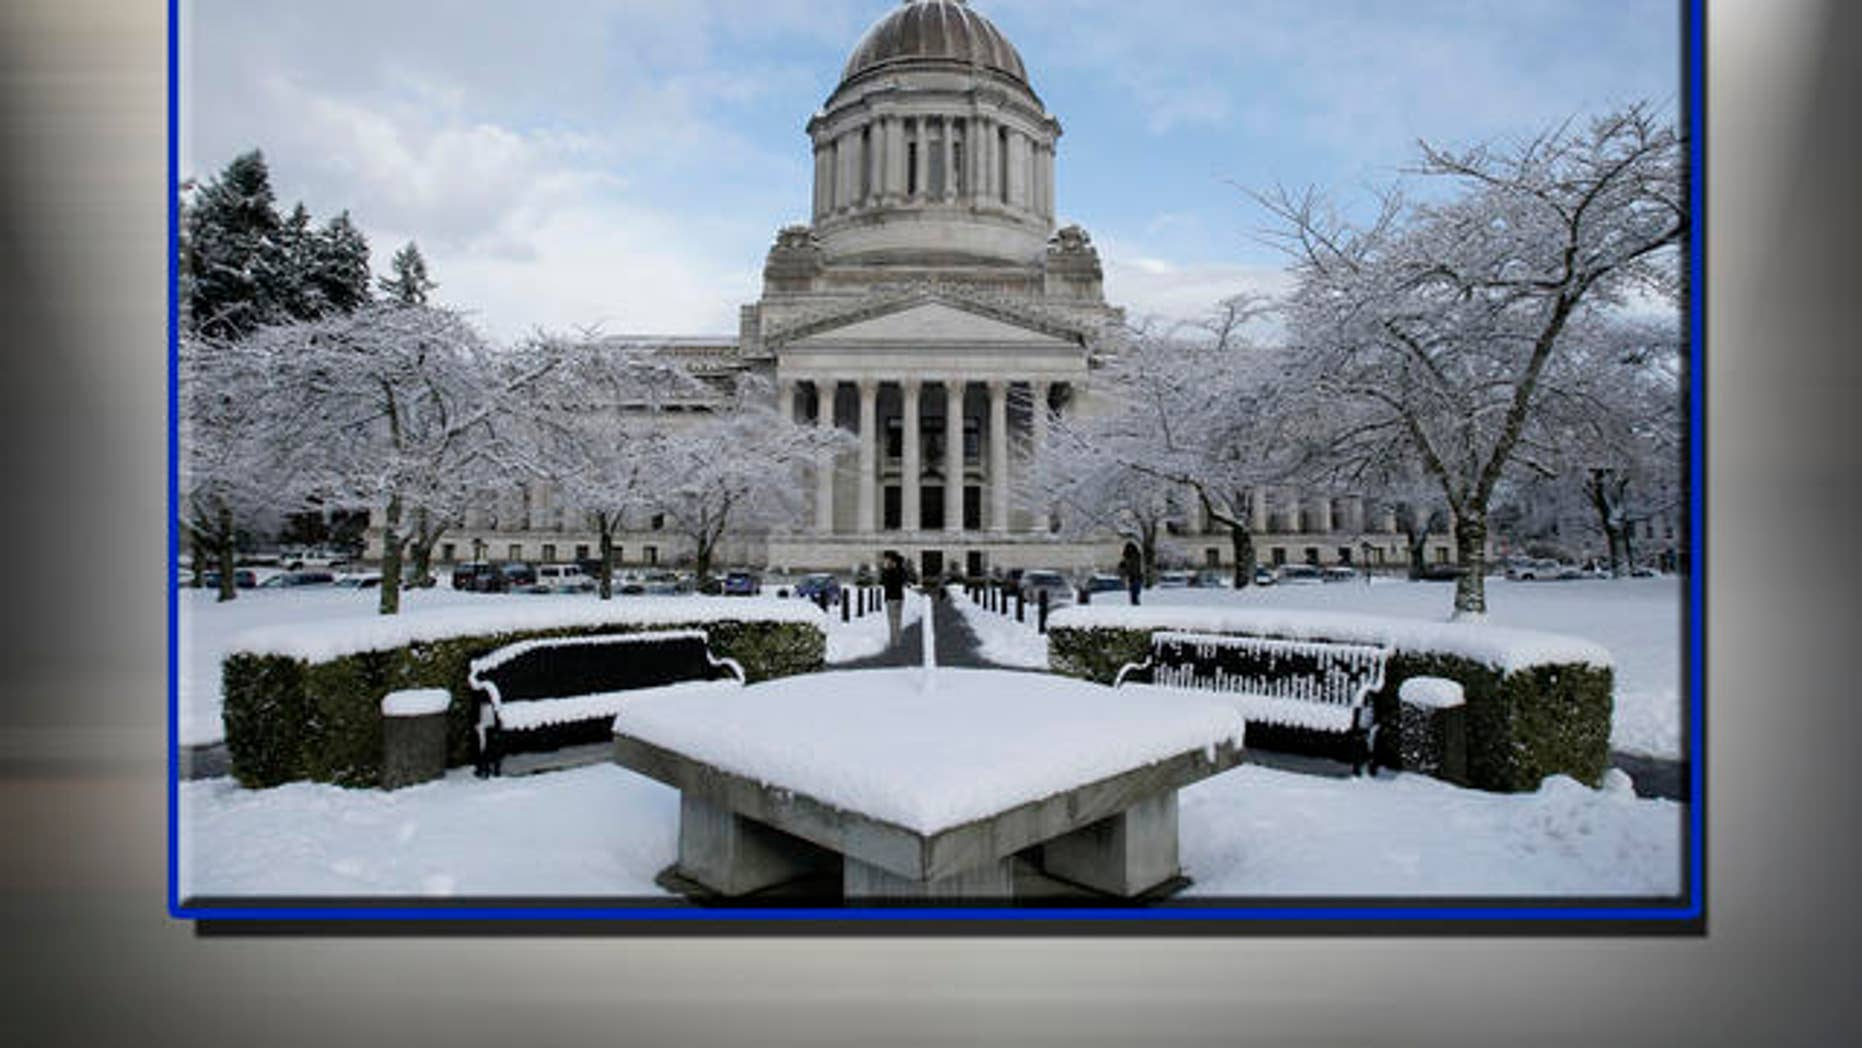 Capitol building in Olympia, Washington. AP